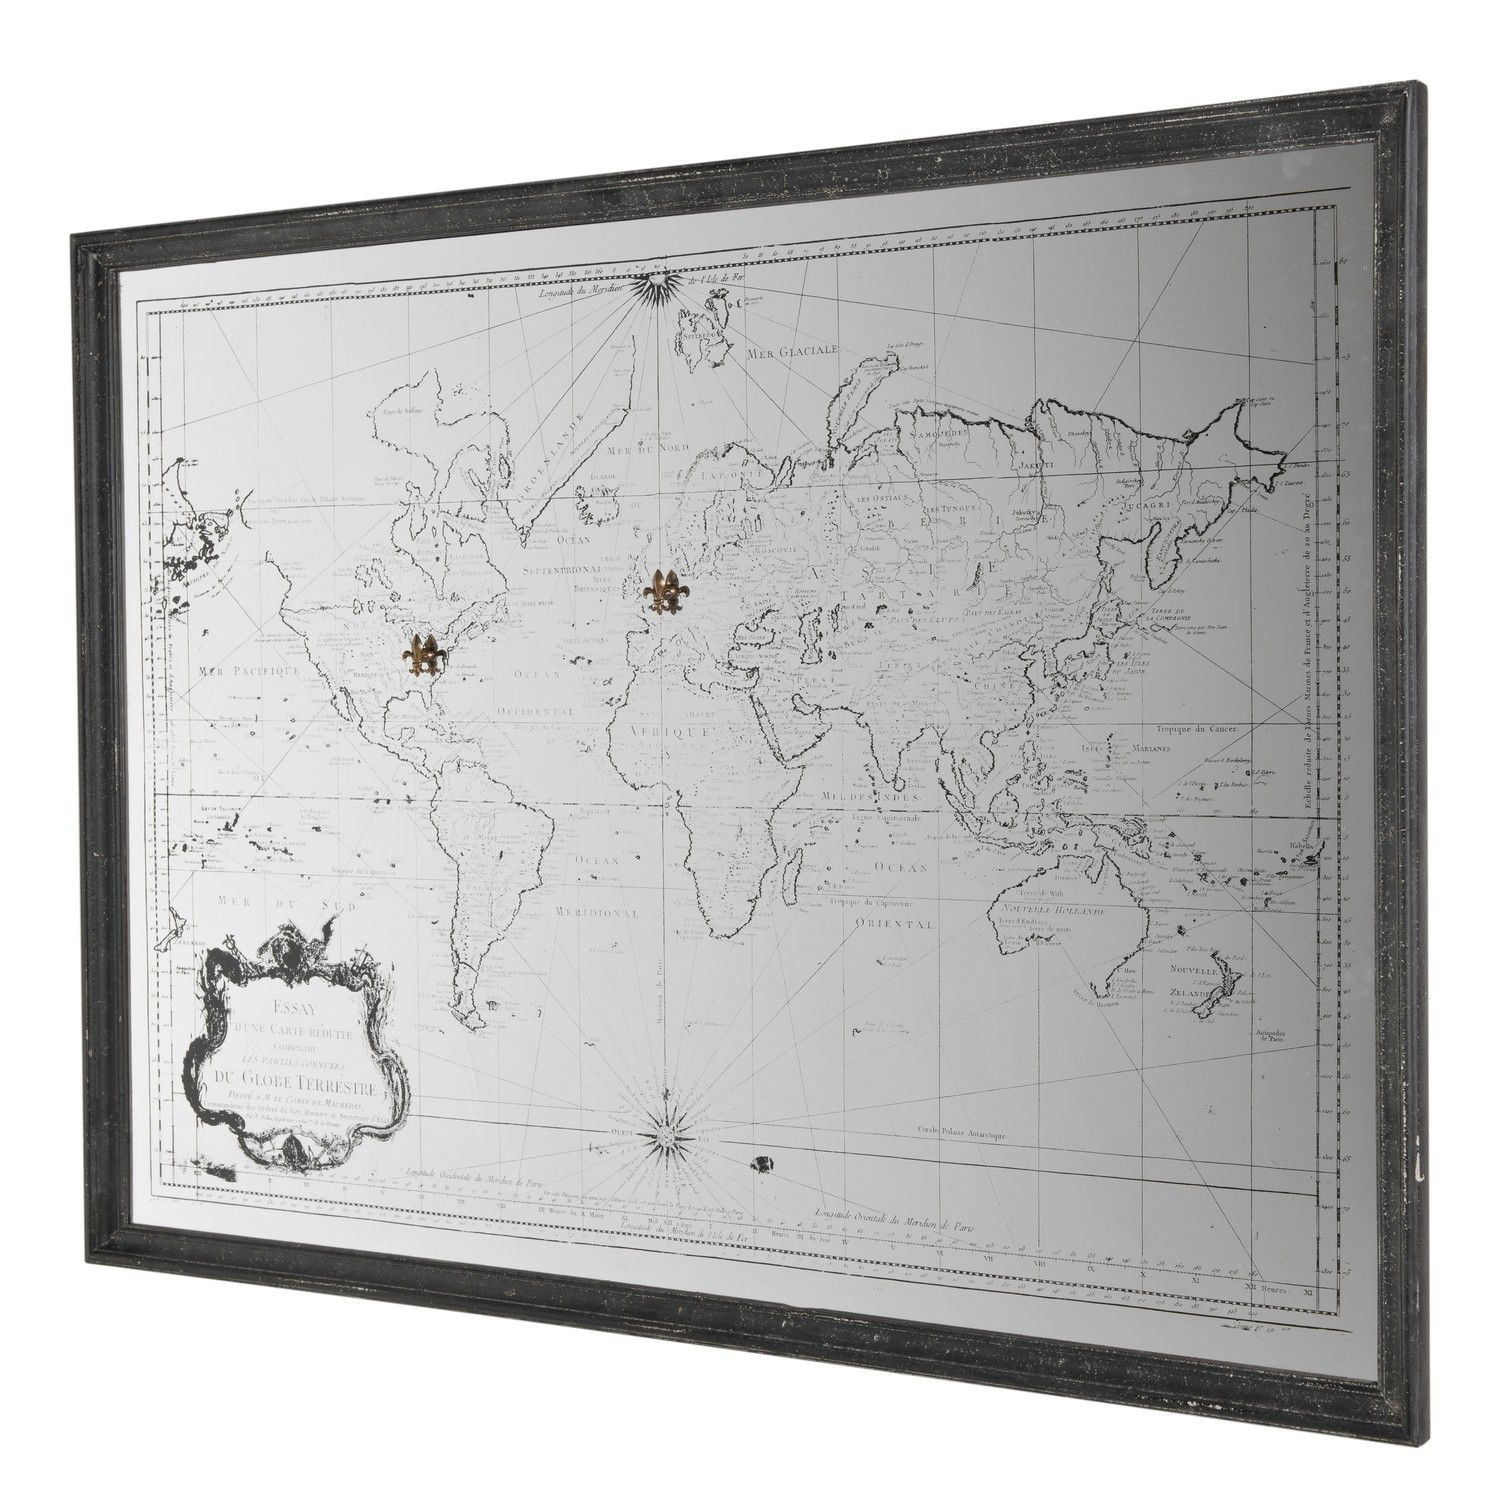 Mirror world map stick glass d decorations pinterest mirror world map stick glass gumiabroncs Gallery